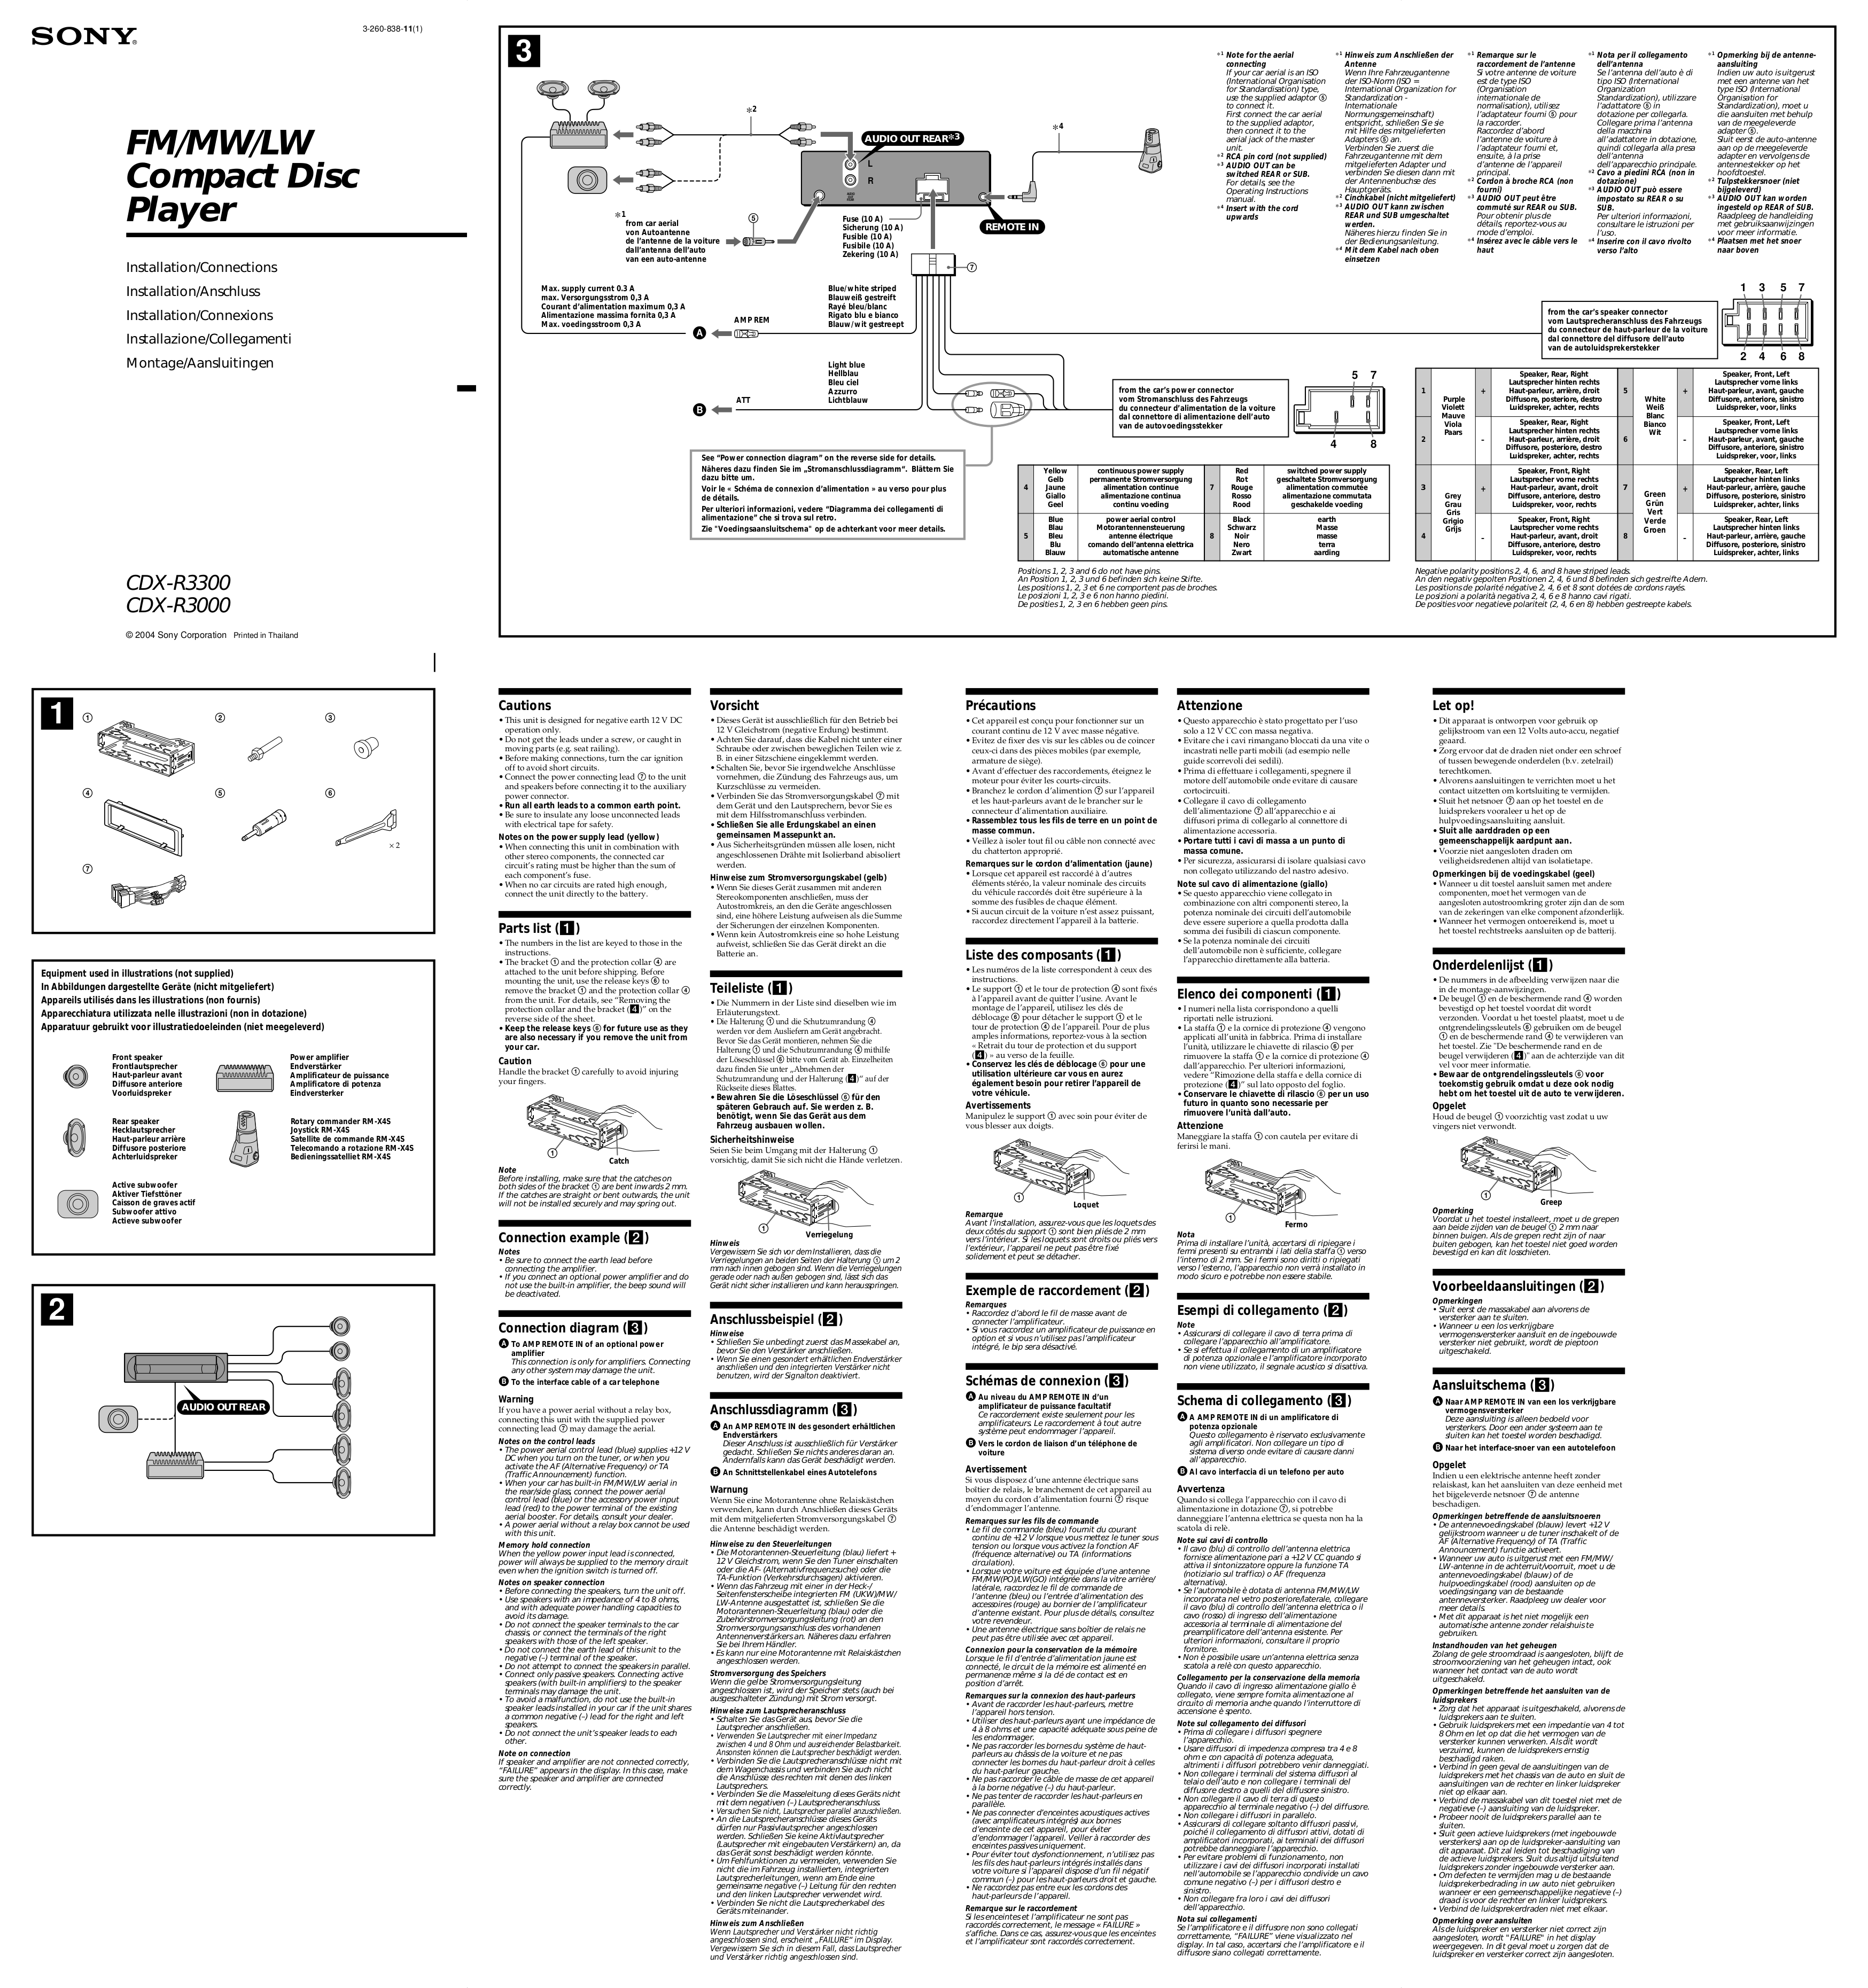 Sony Cdx R3000 Wiring Diagram 29 Images Also Gt420ip On L600x Pdf For Car Receiver Manual